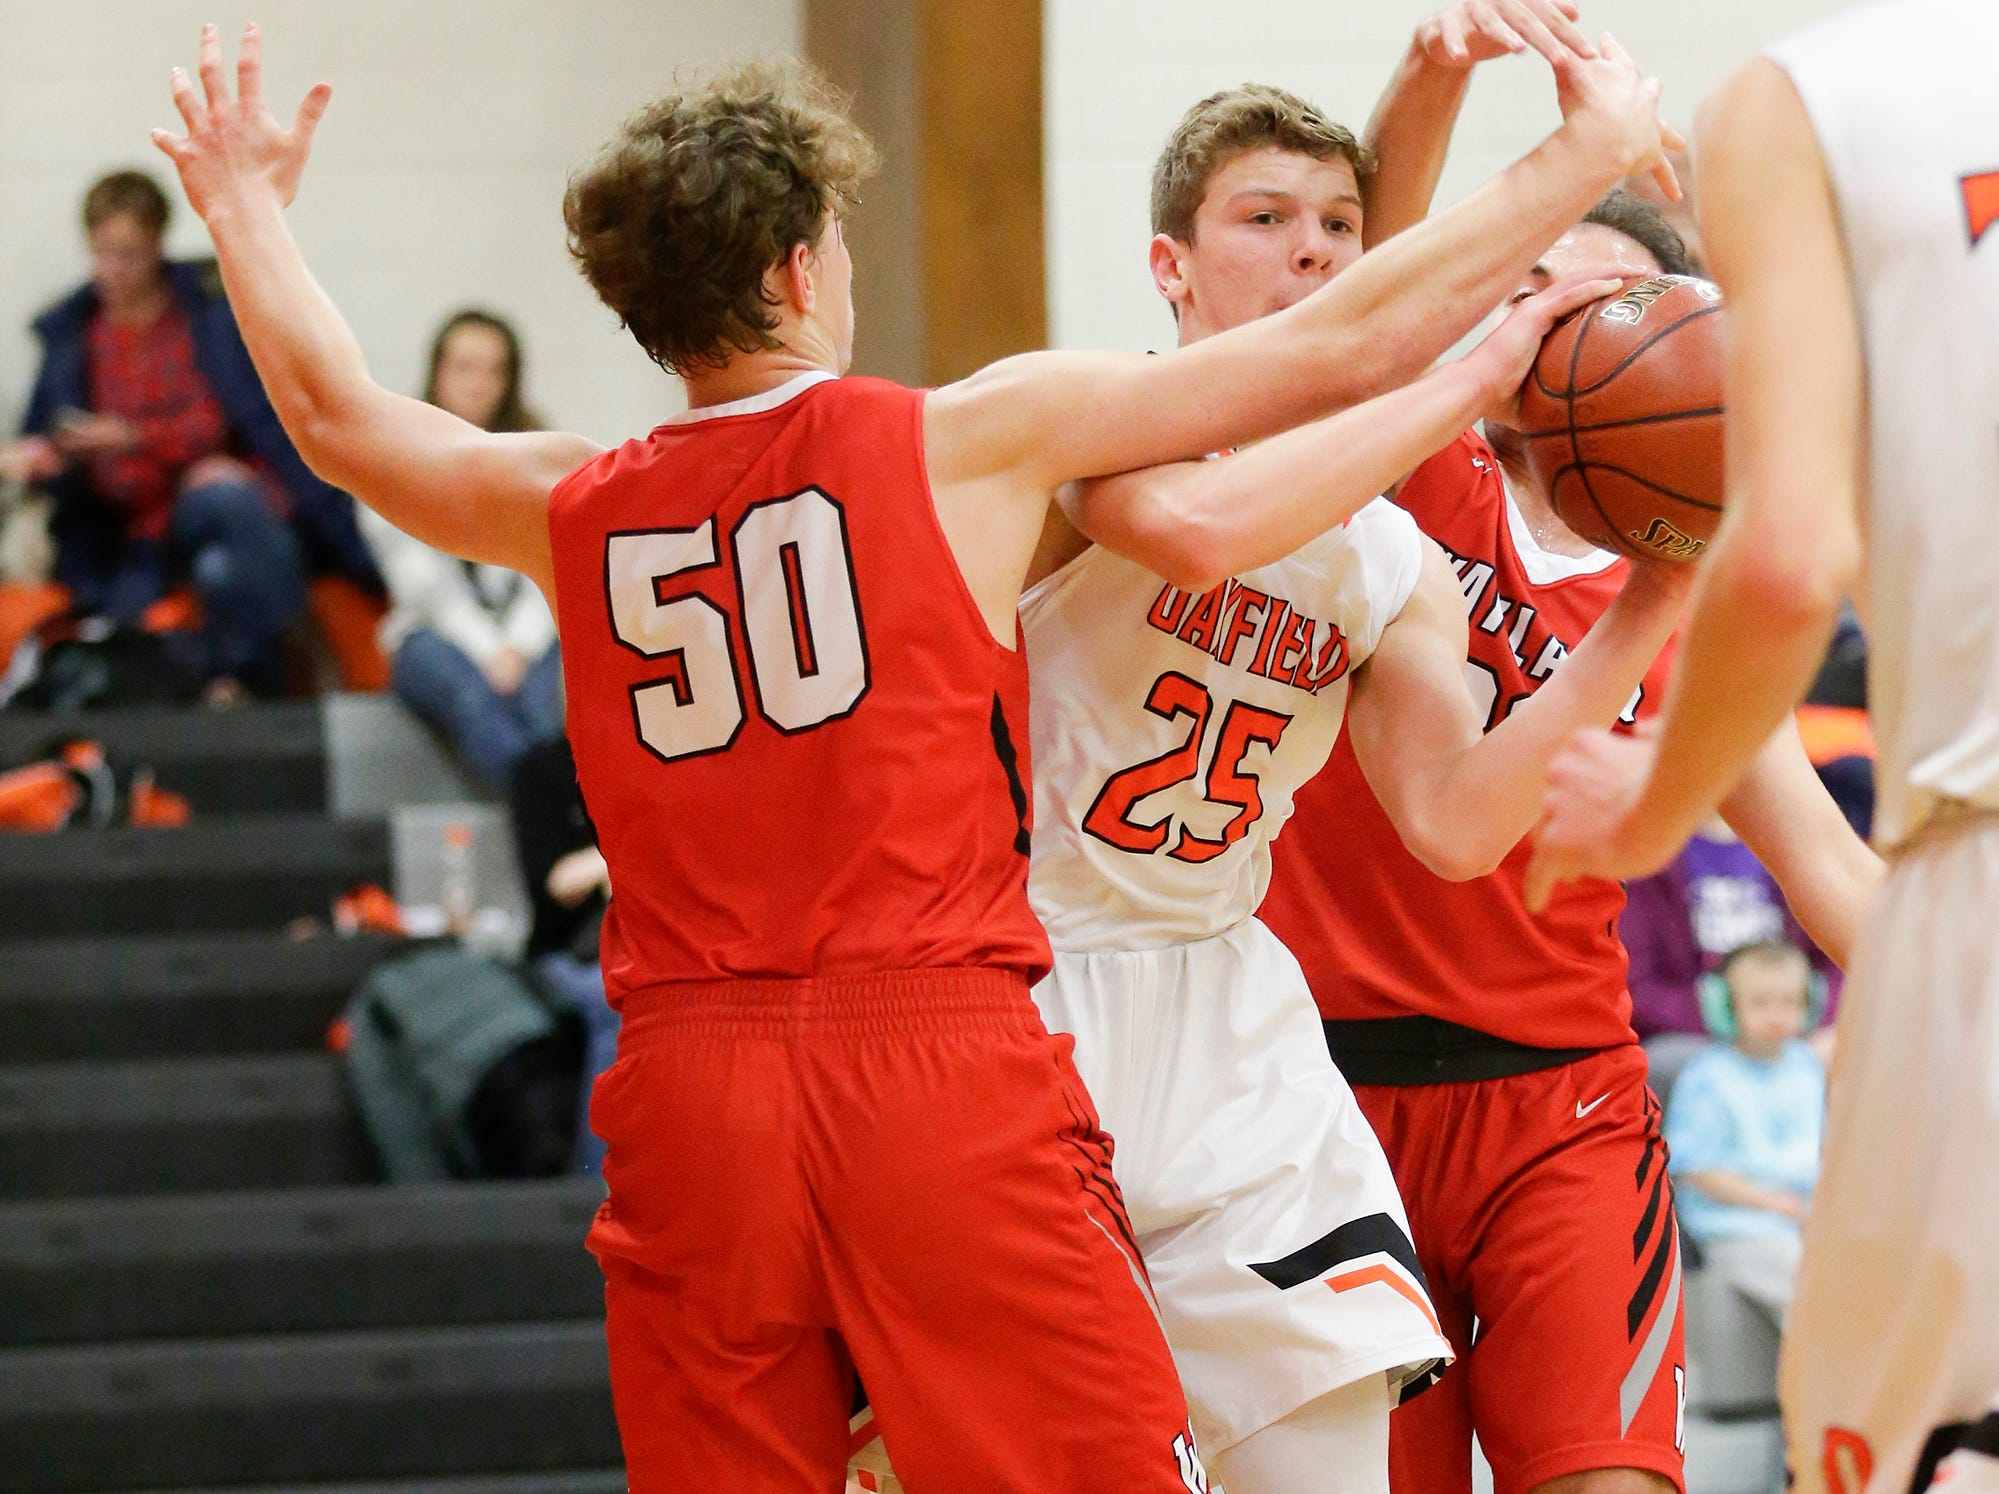 Oakfield High School boys basketball's Grant Bass attempts to pass the ball away from Wayland Academy's Adam Rubinchik (50) and Kerem Kocer (30) January 11, 2019 during their game in Oakfield. Oakfield won the game 56-48. Doug Raflik/USA TODAY NETWORK-Wisconsin